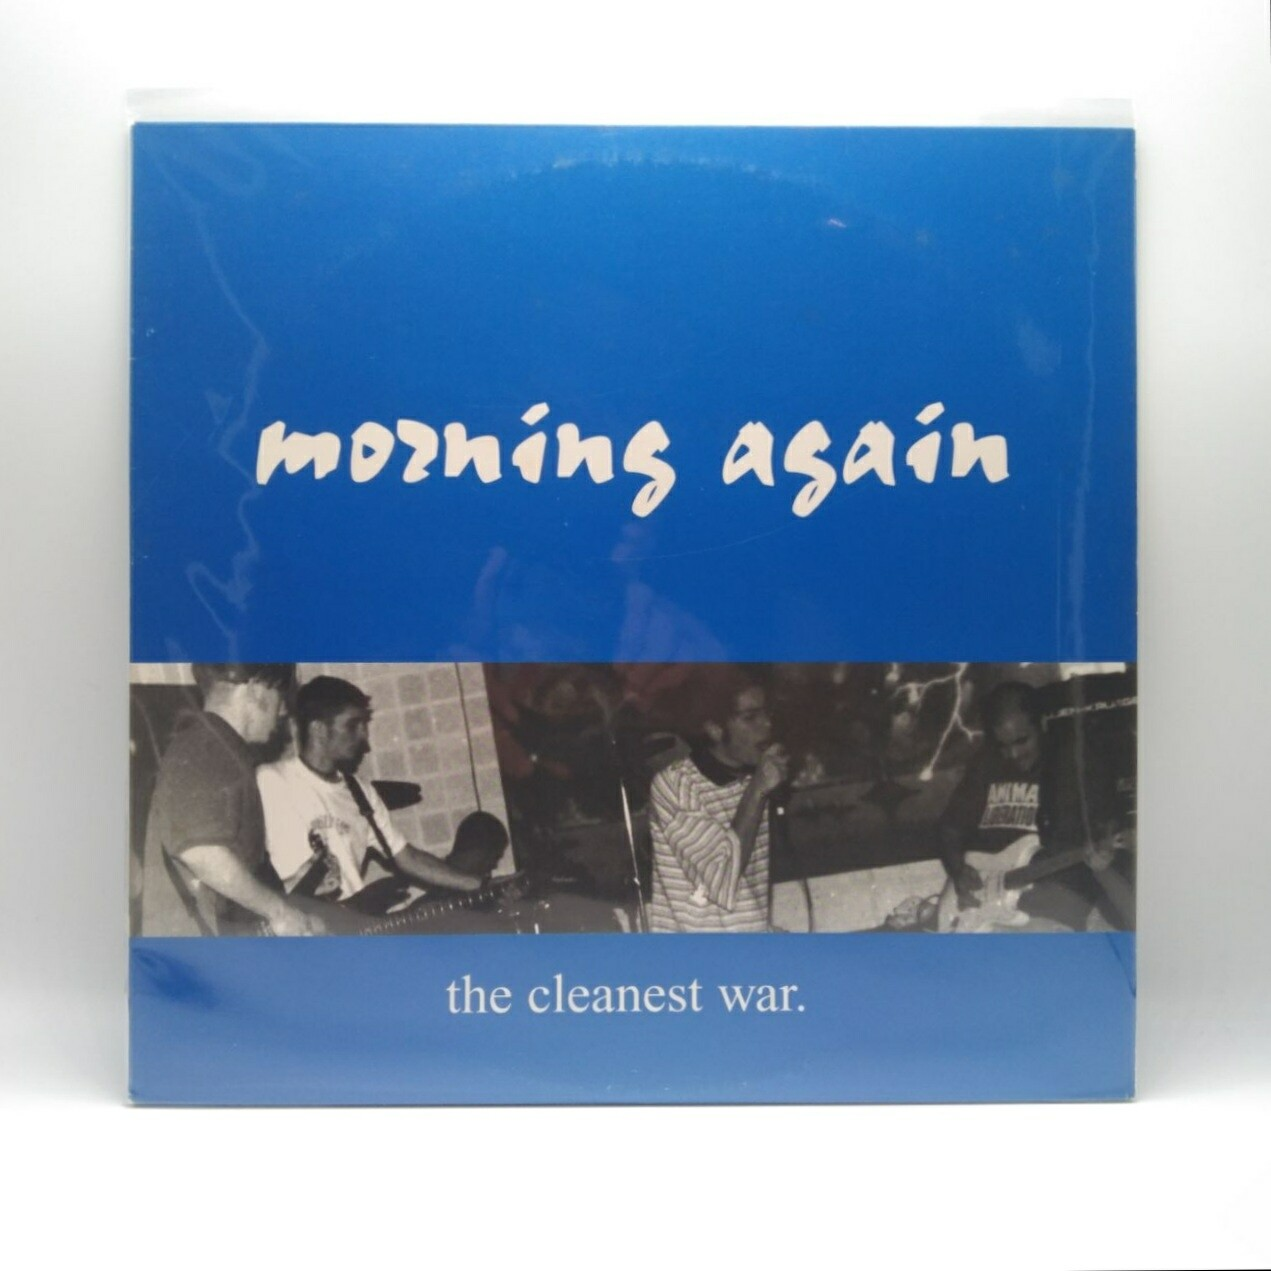 [USED] MORNING AGAIN -THE CLEANEST WAR- LP